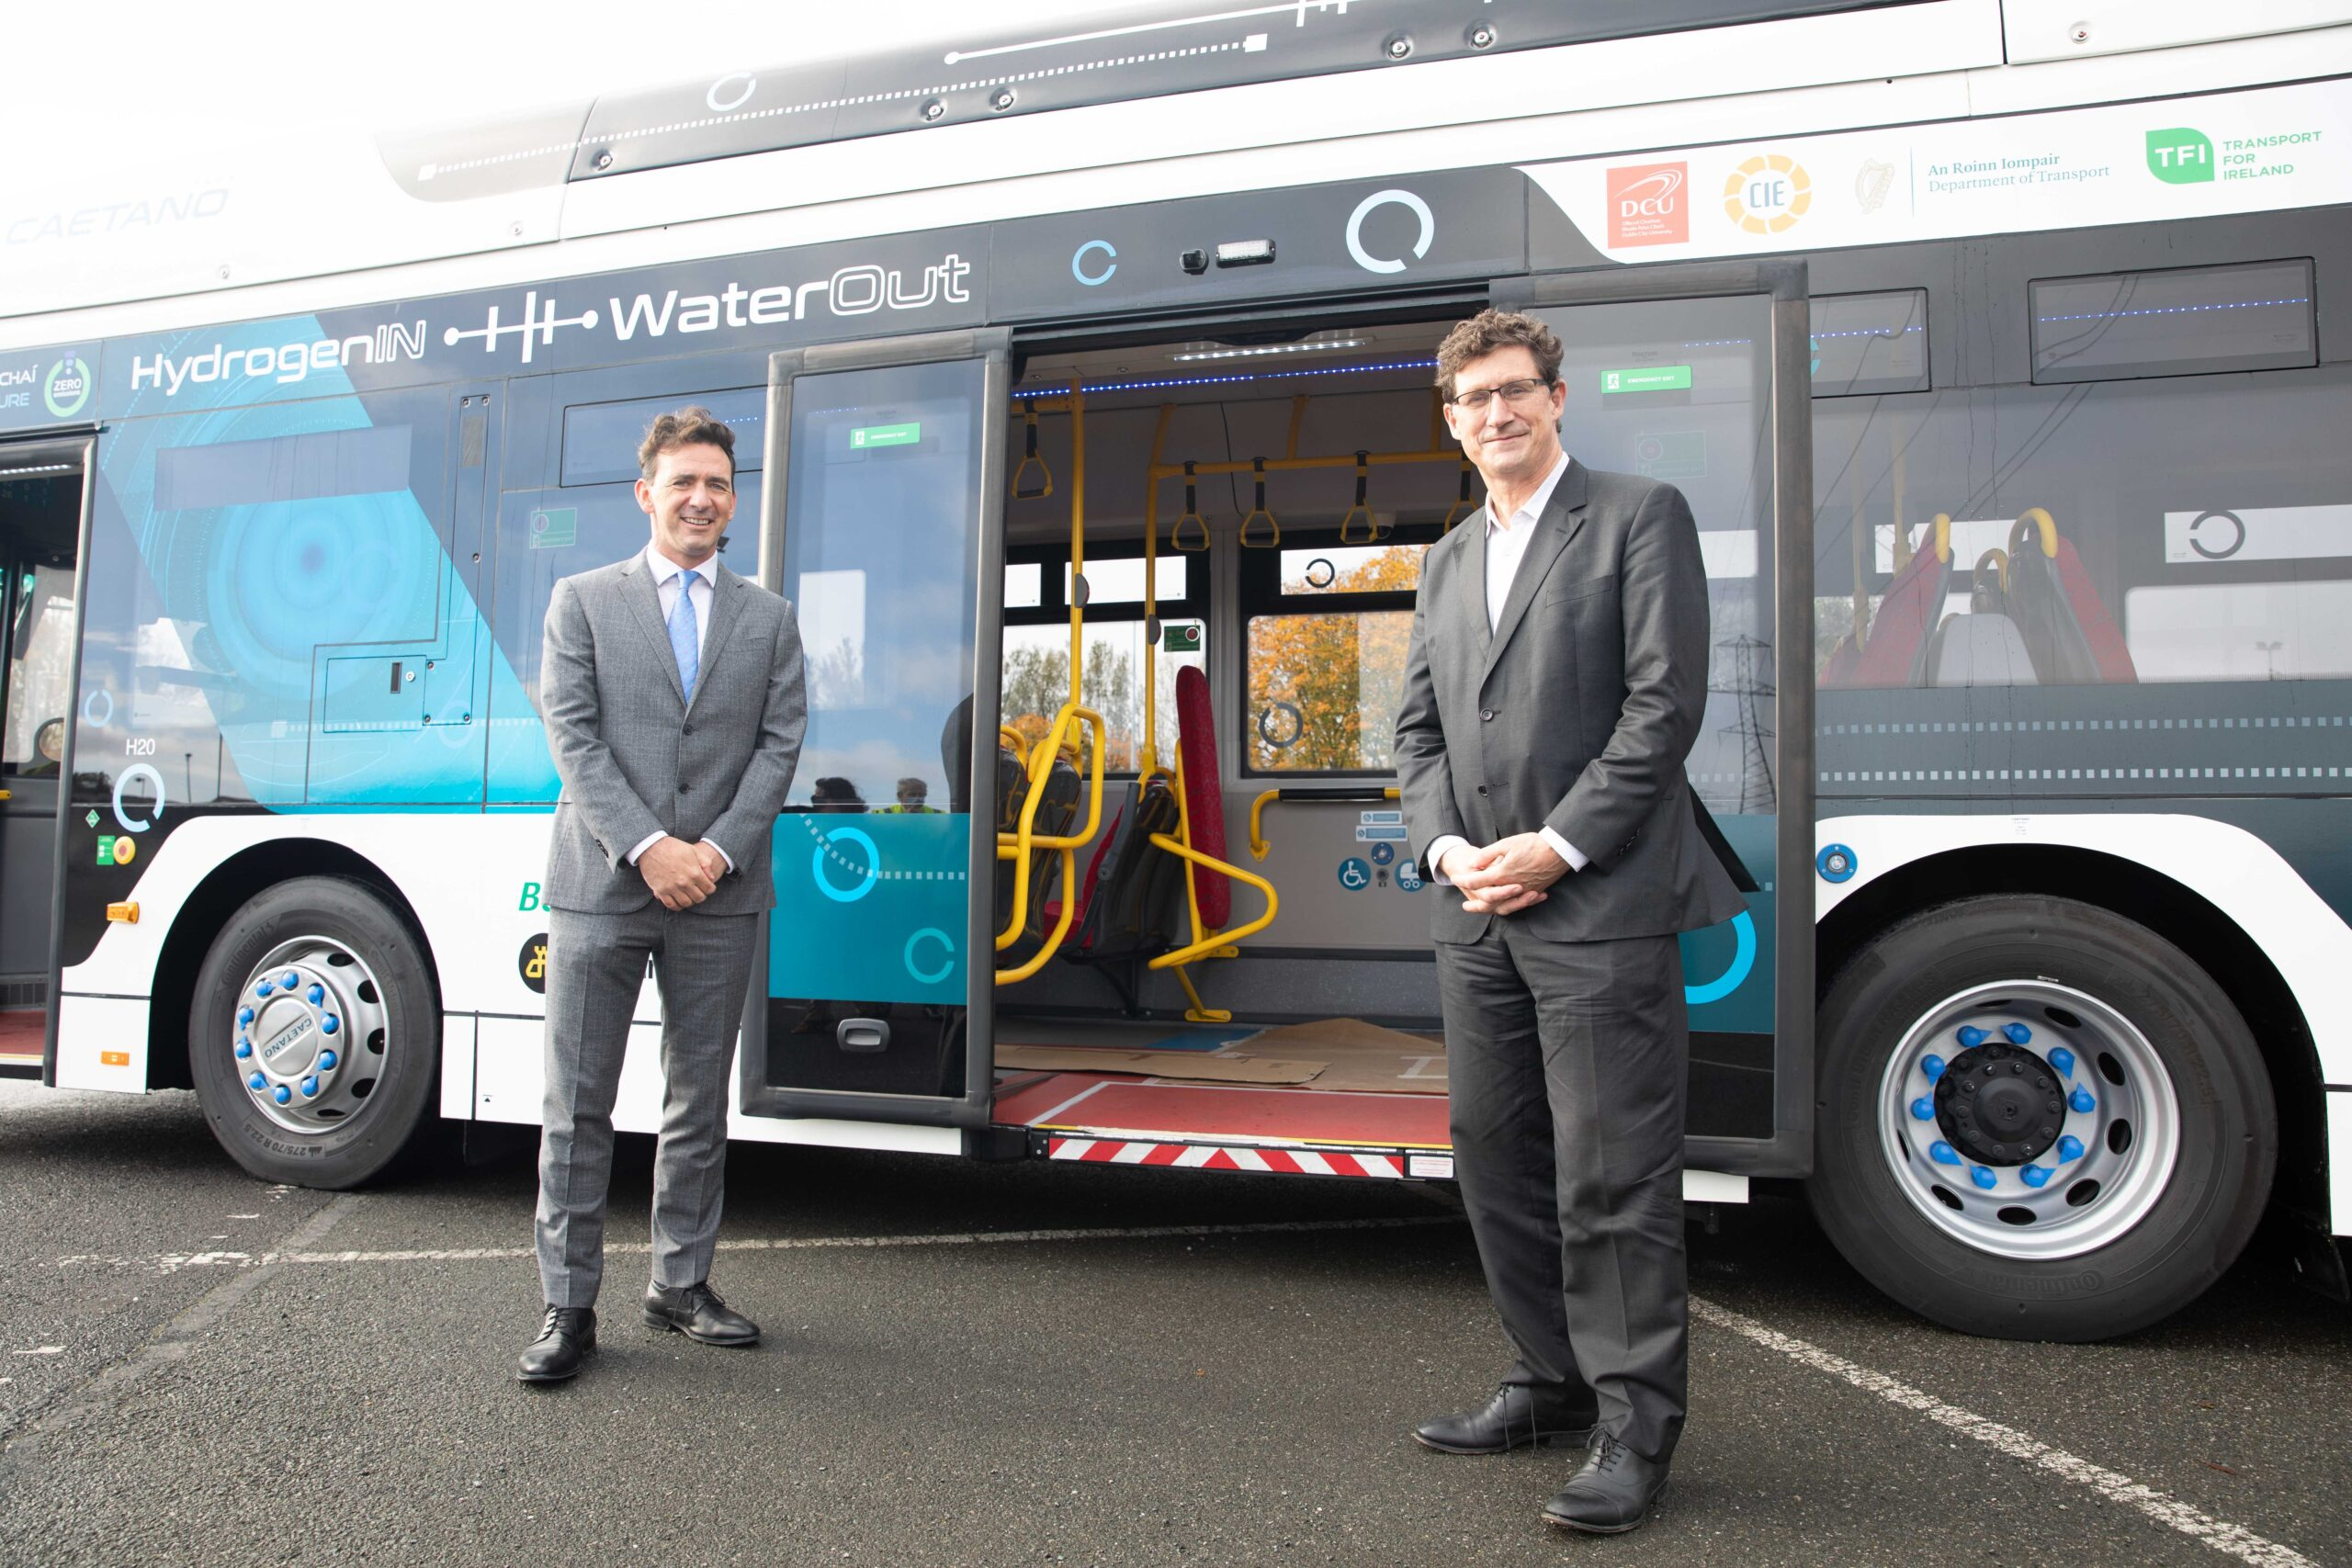 Toyota Hydrogen Fuel Cell Powered Bus  Arrives in Ireland for Limited Trial